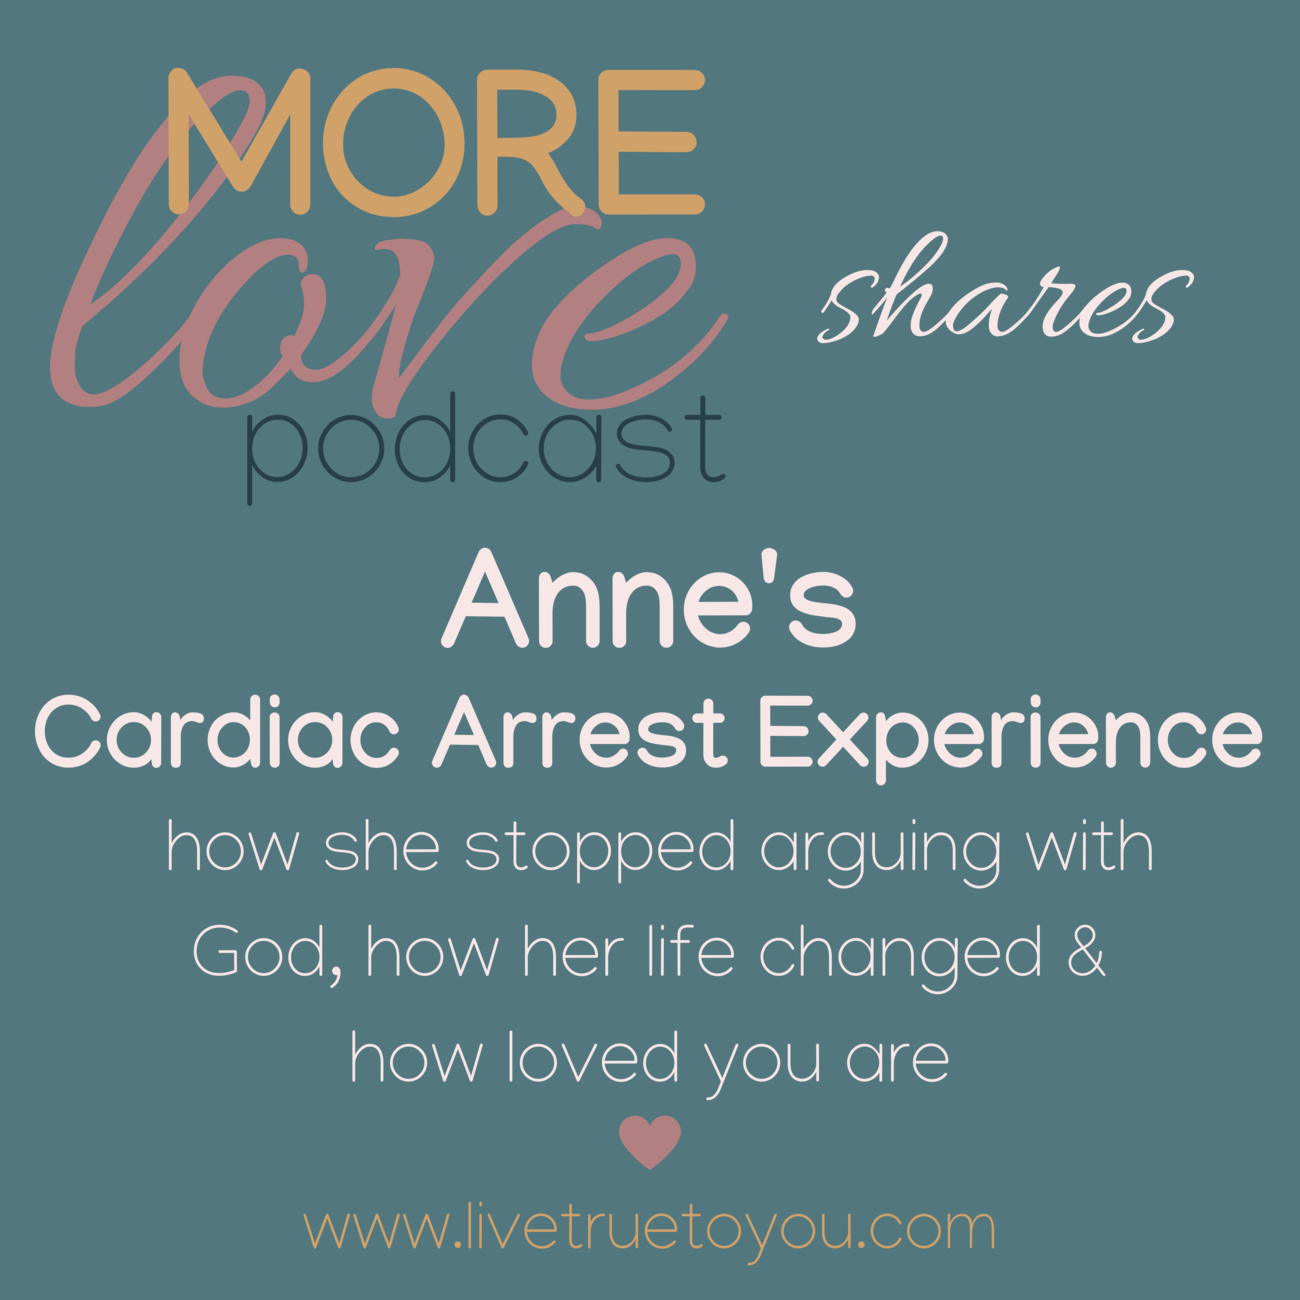 More Love Podcast Shares Keith Livingstone's Survival of Terminal Brain Tumour